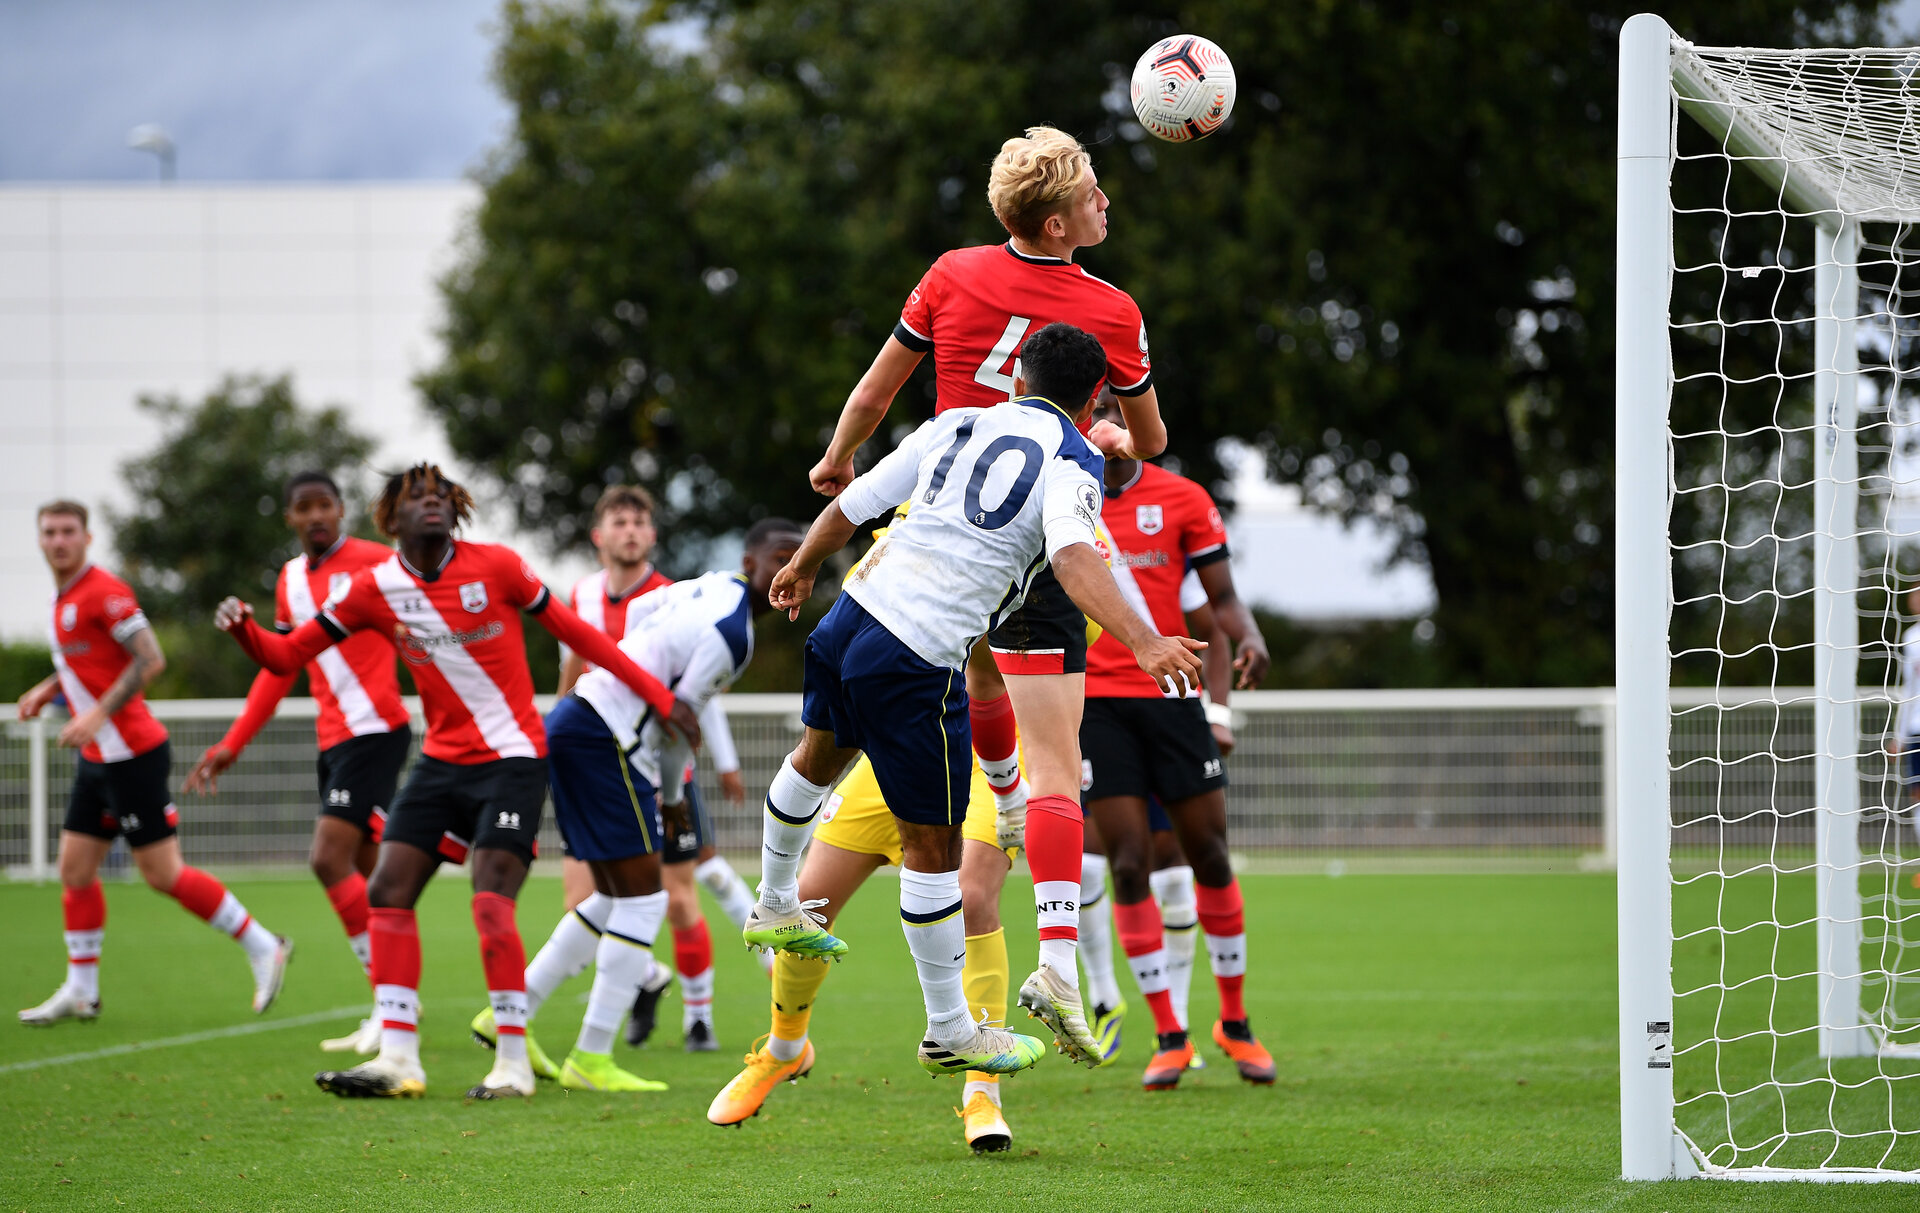 ENFIELD, ENGLAND - OCTOBER 03: Dilan Markanday of Tottenham Hotspur misses a chance during the Premier League 2 game between Tottenham Hotspur and Southampton at Tottenham Hotspur Training Centre on October 03, 2020 in Enfield, England. (Photo by Justin Setterfield/Getty Images)